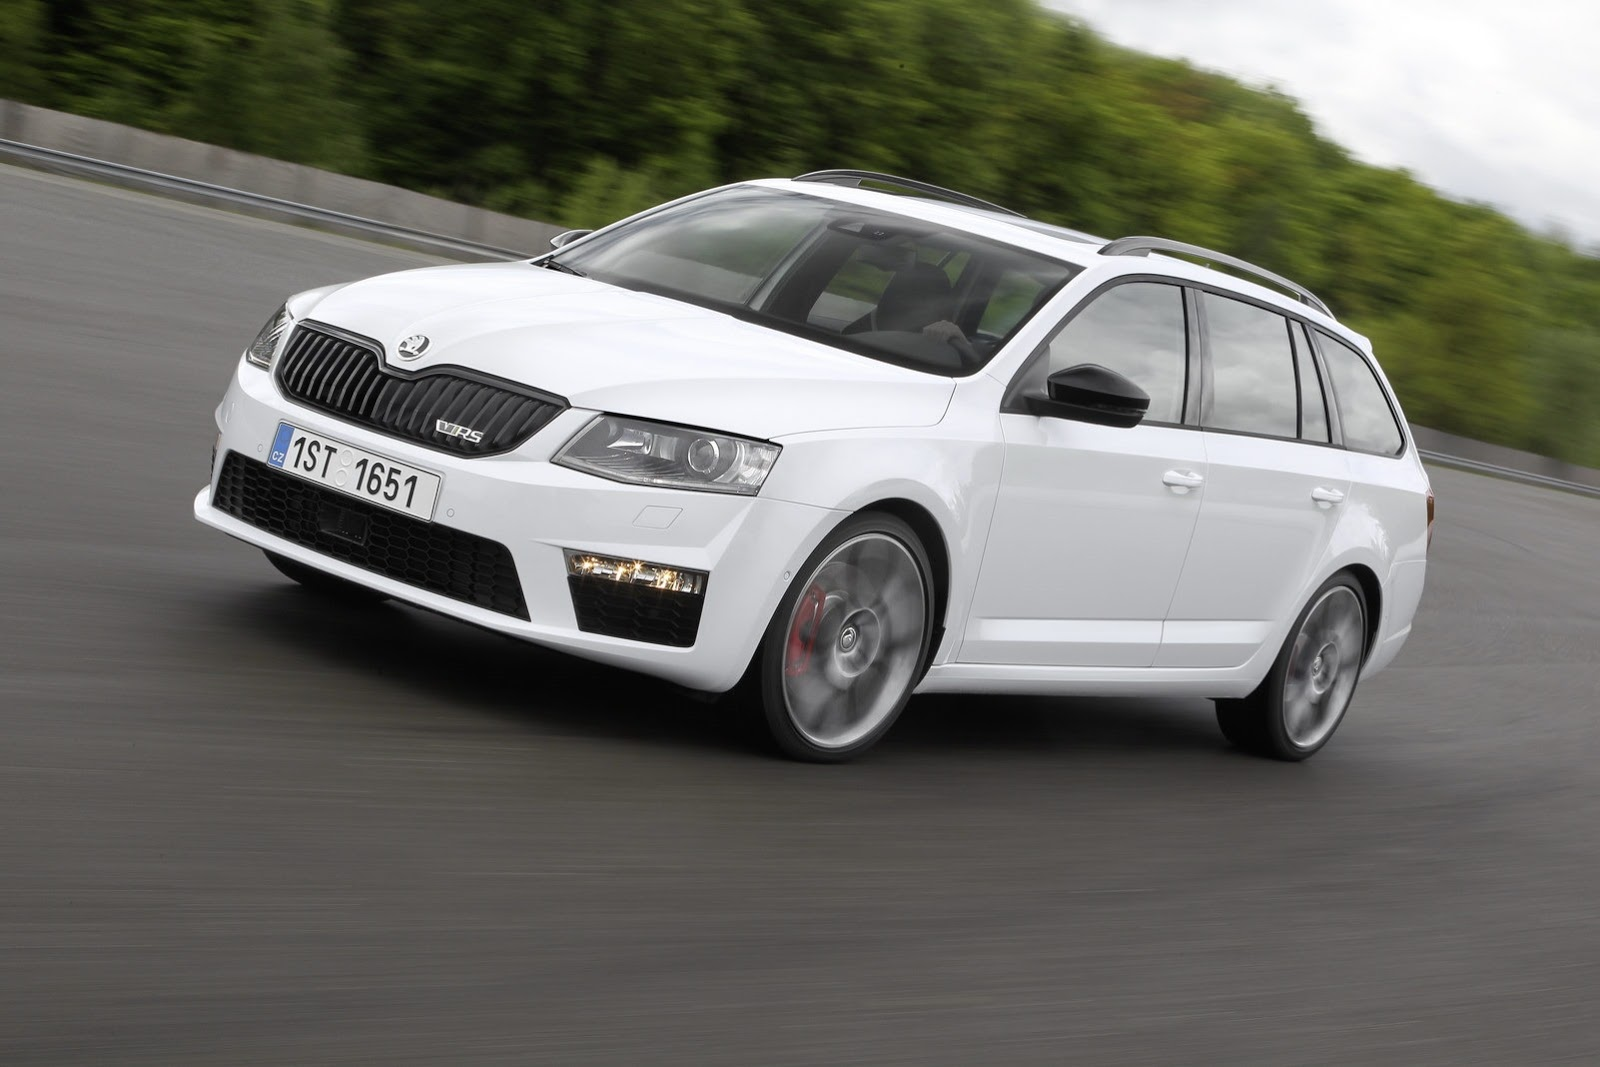 new skoda octavia rs pics aplenty autoevolution. Black Bedroom Furniture Sets. Home Design Ideas